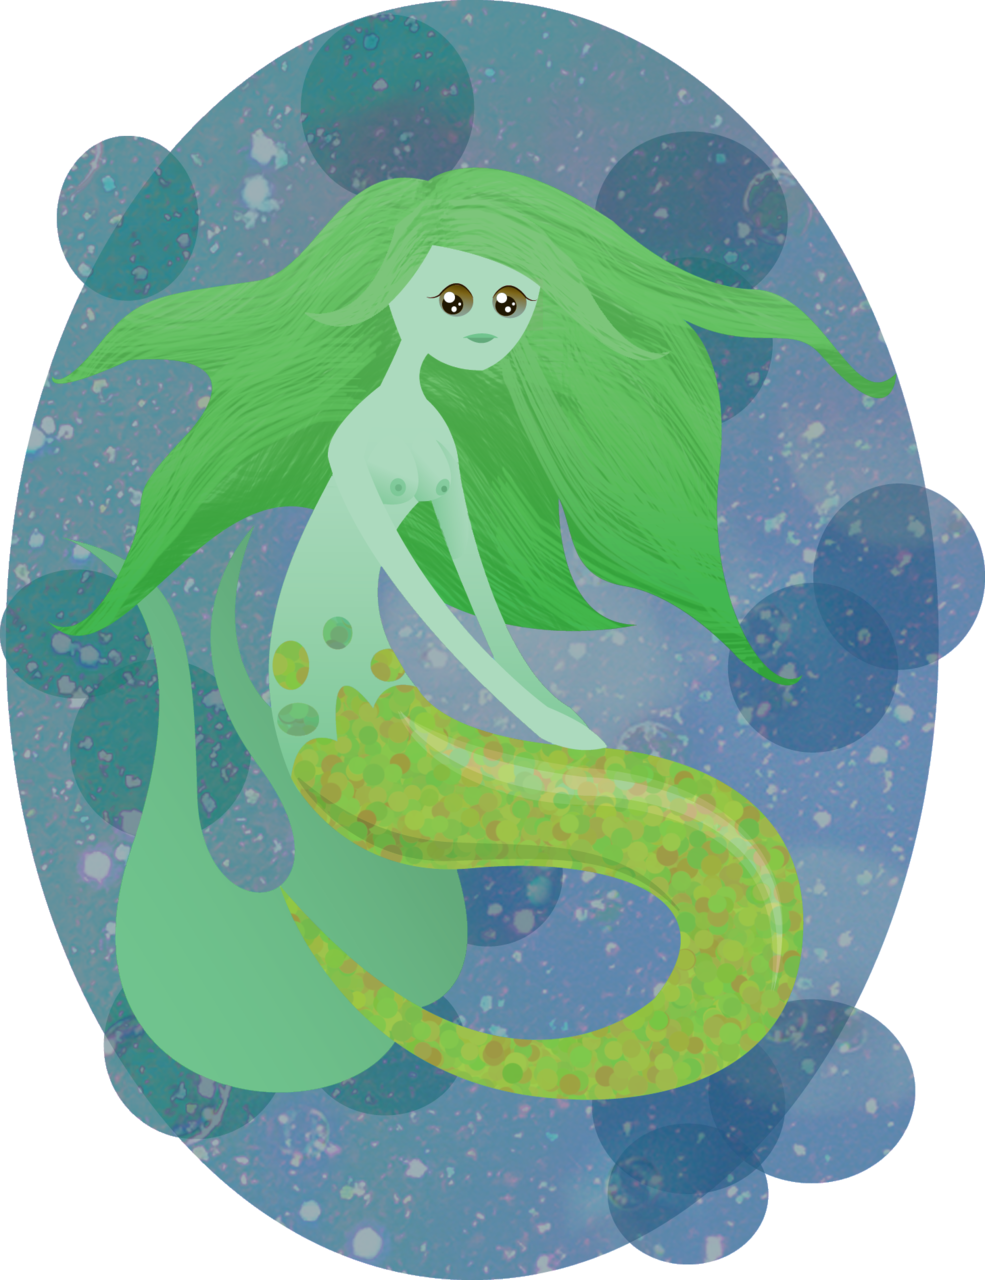 Here's another creepy mermaid XD